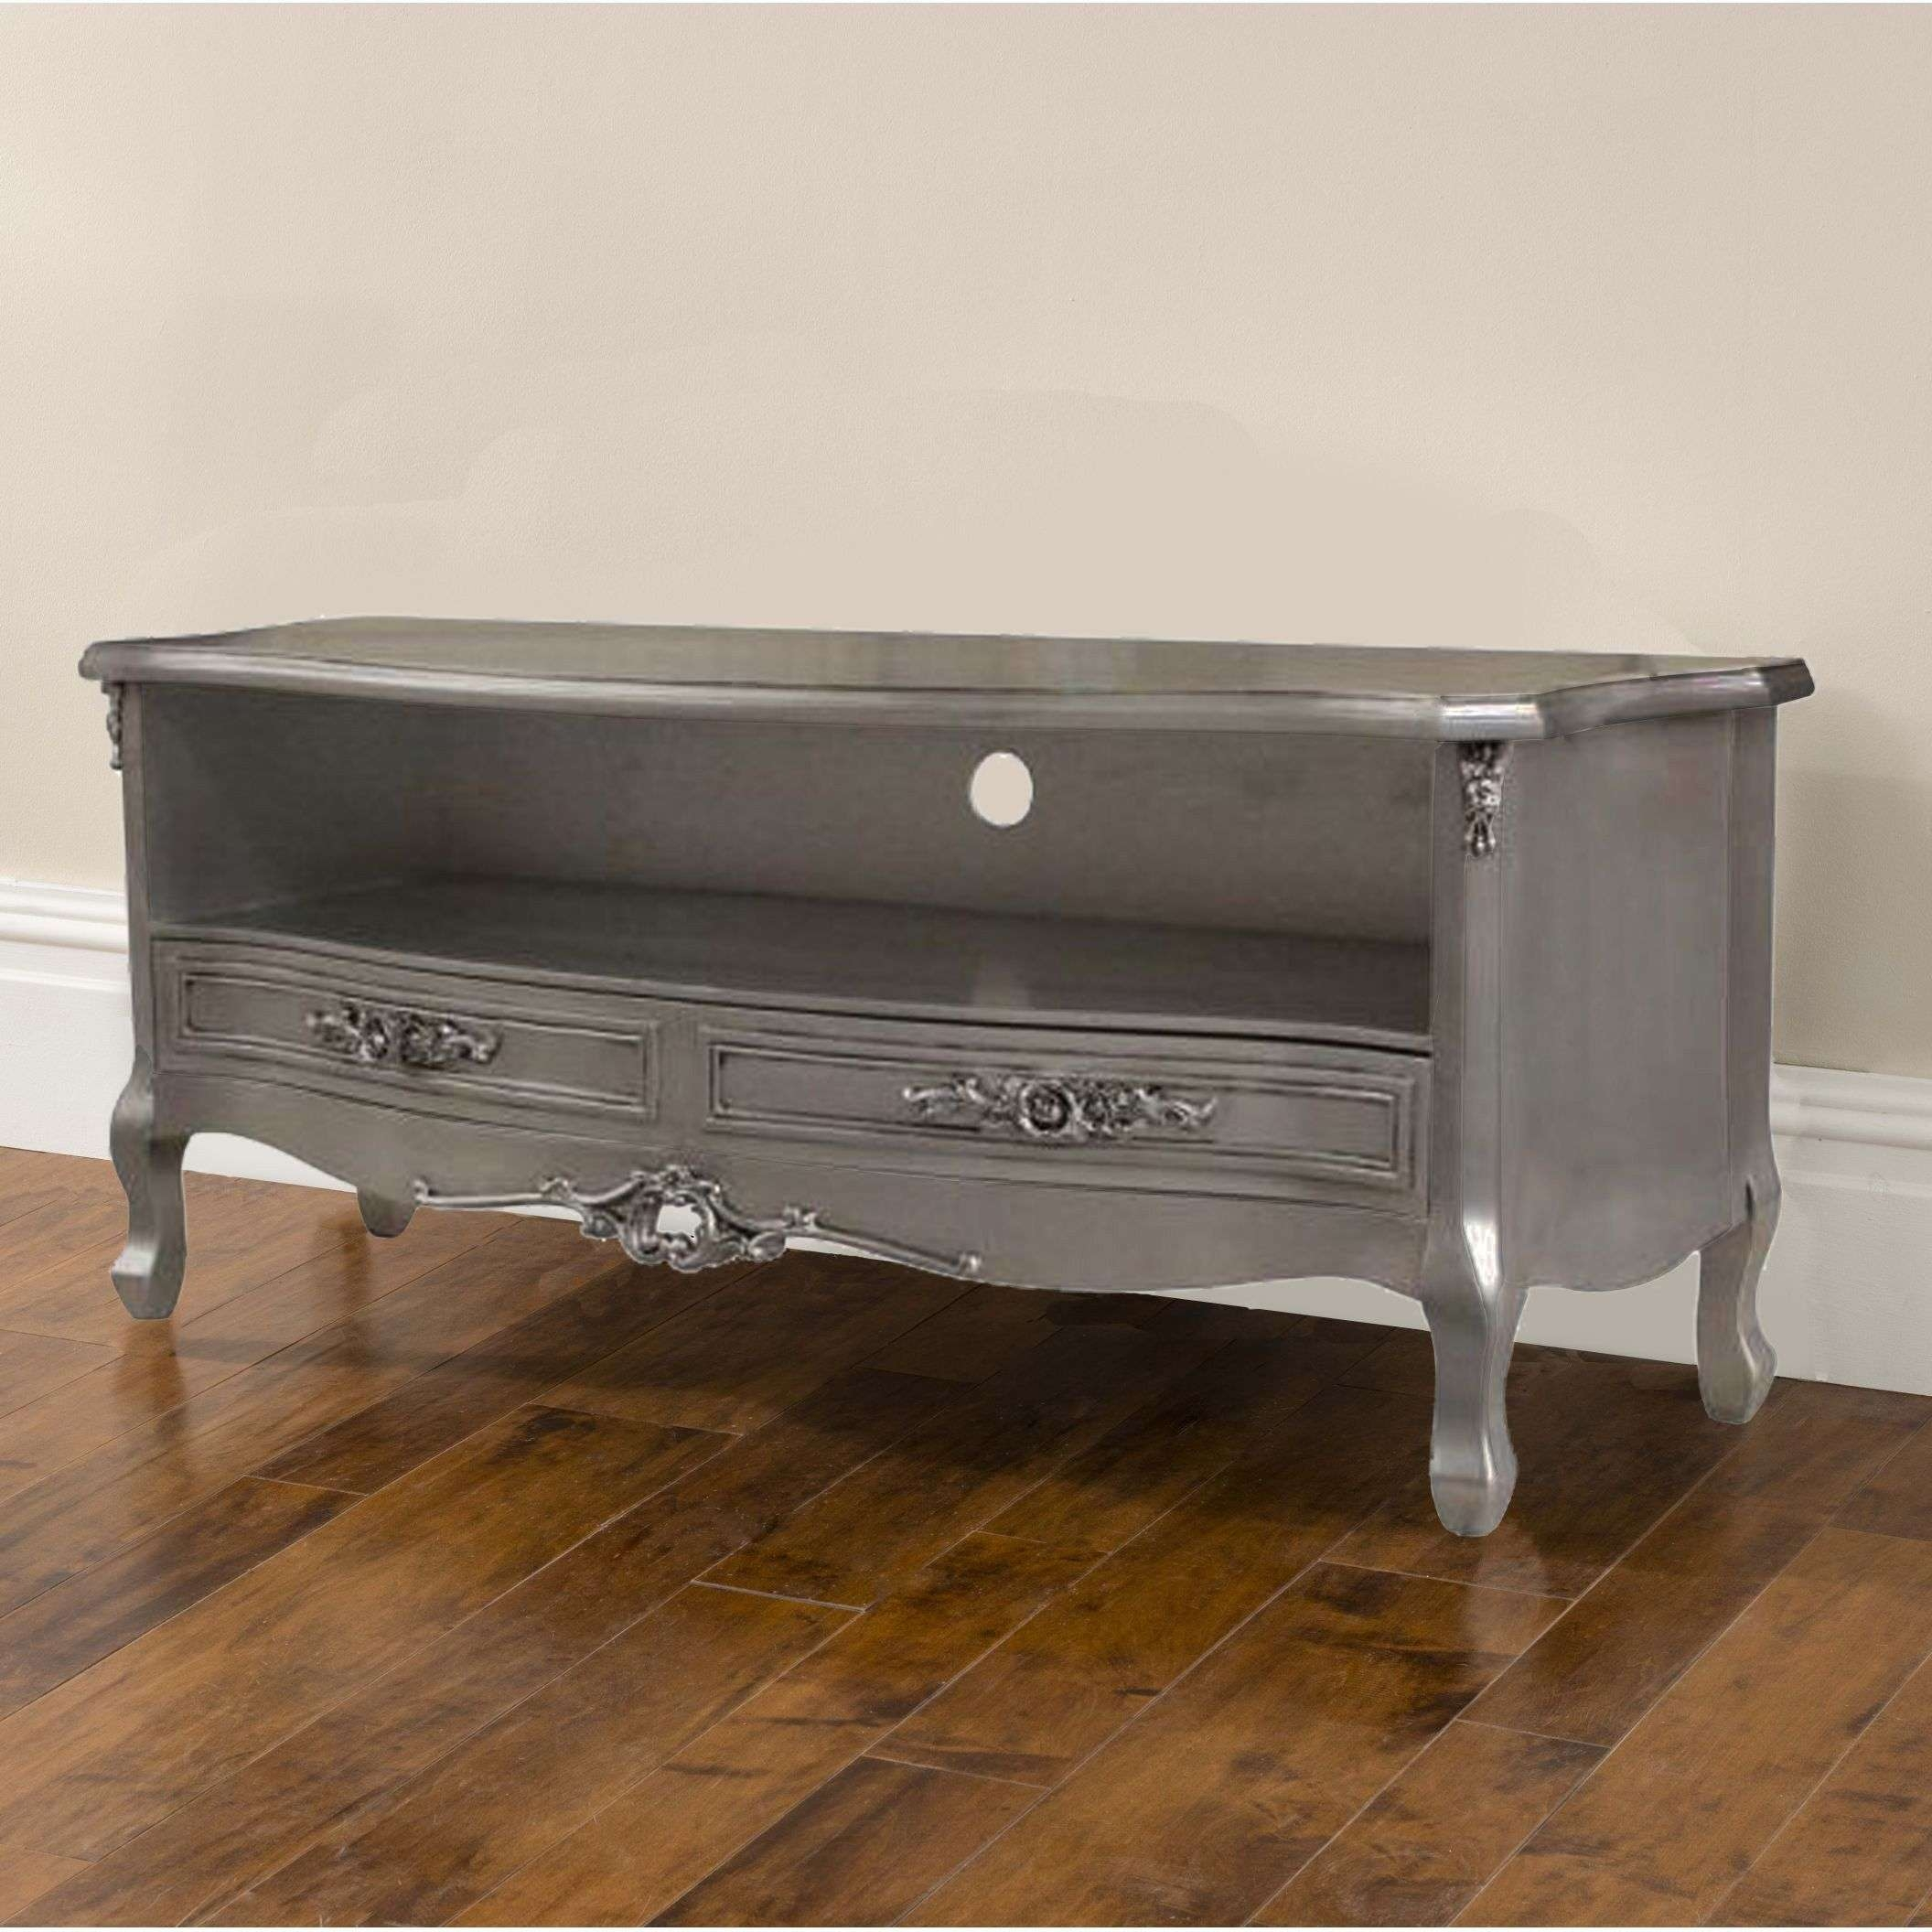 Silver Antique French Tv Cabinet Throughout French Tv Cabinets (View 6 of 20)